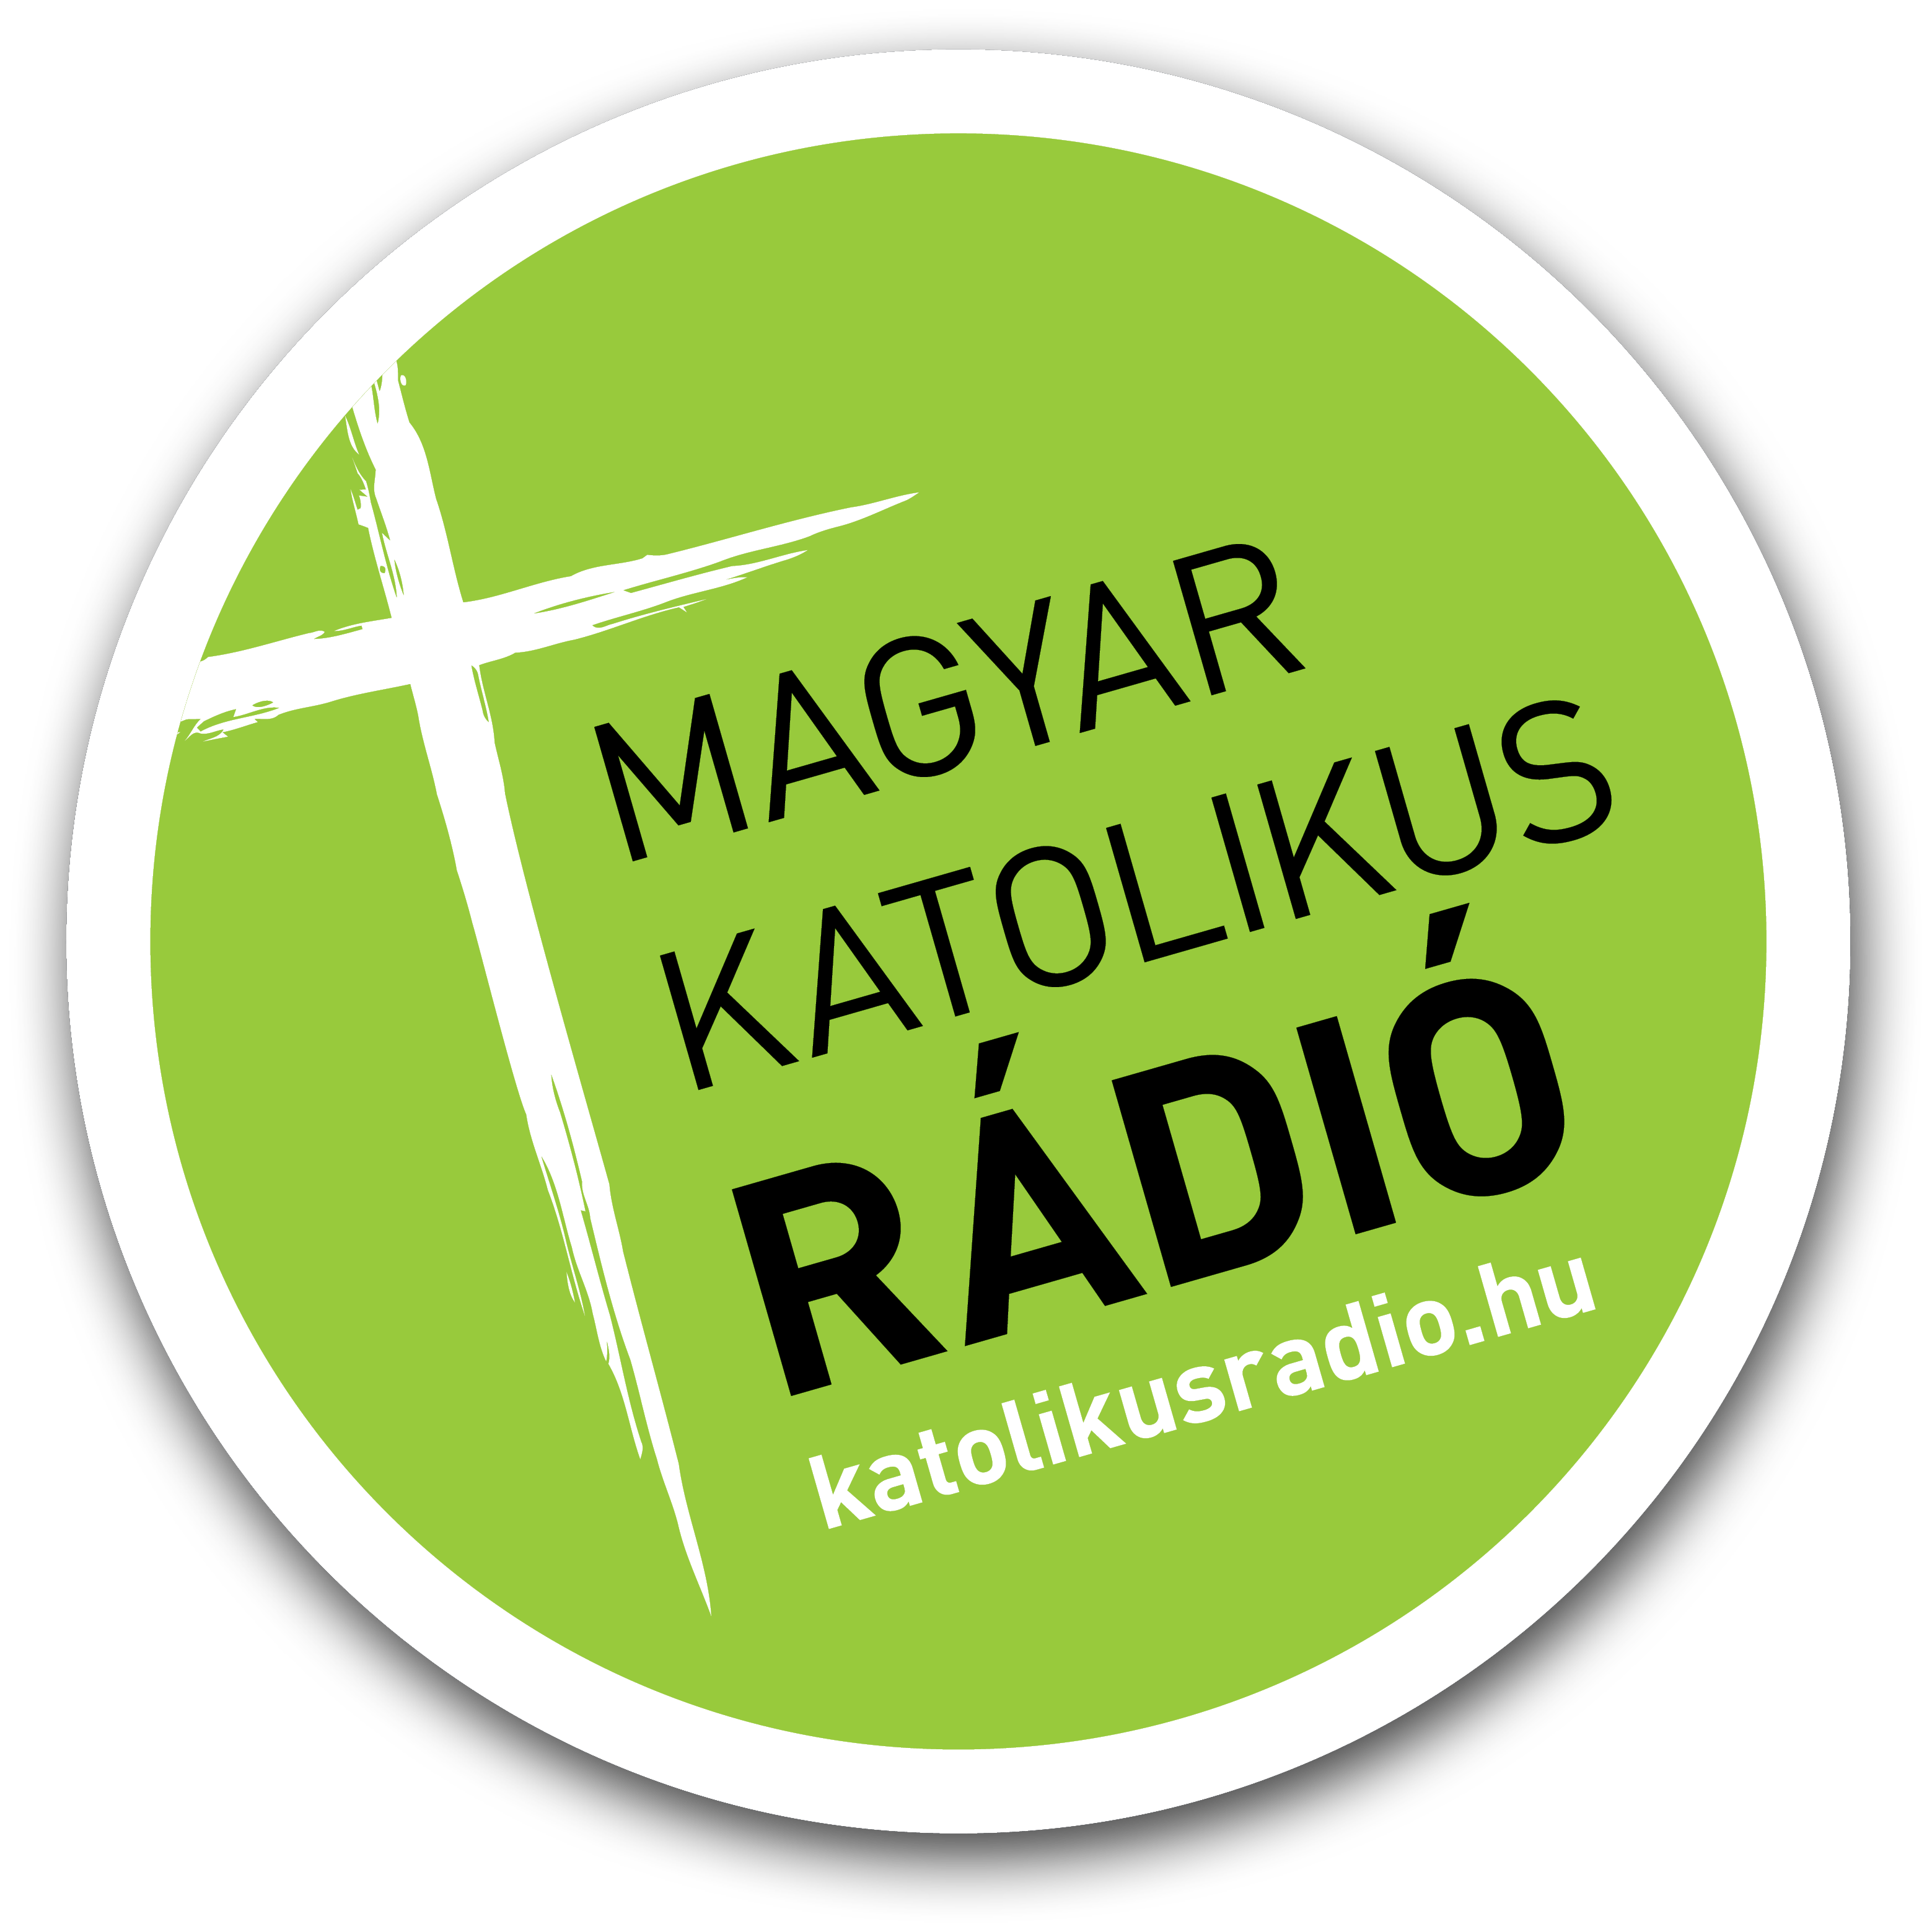 Hungarian Catholic Radio